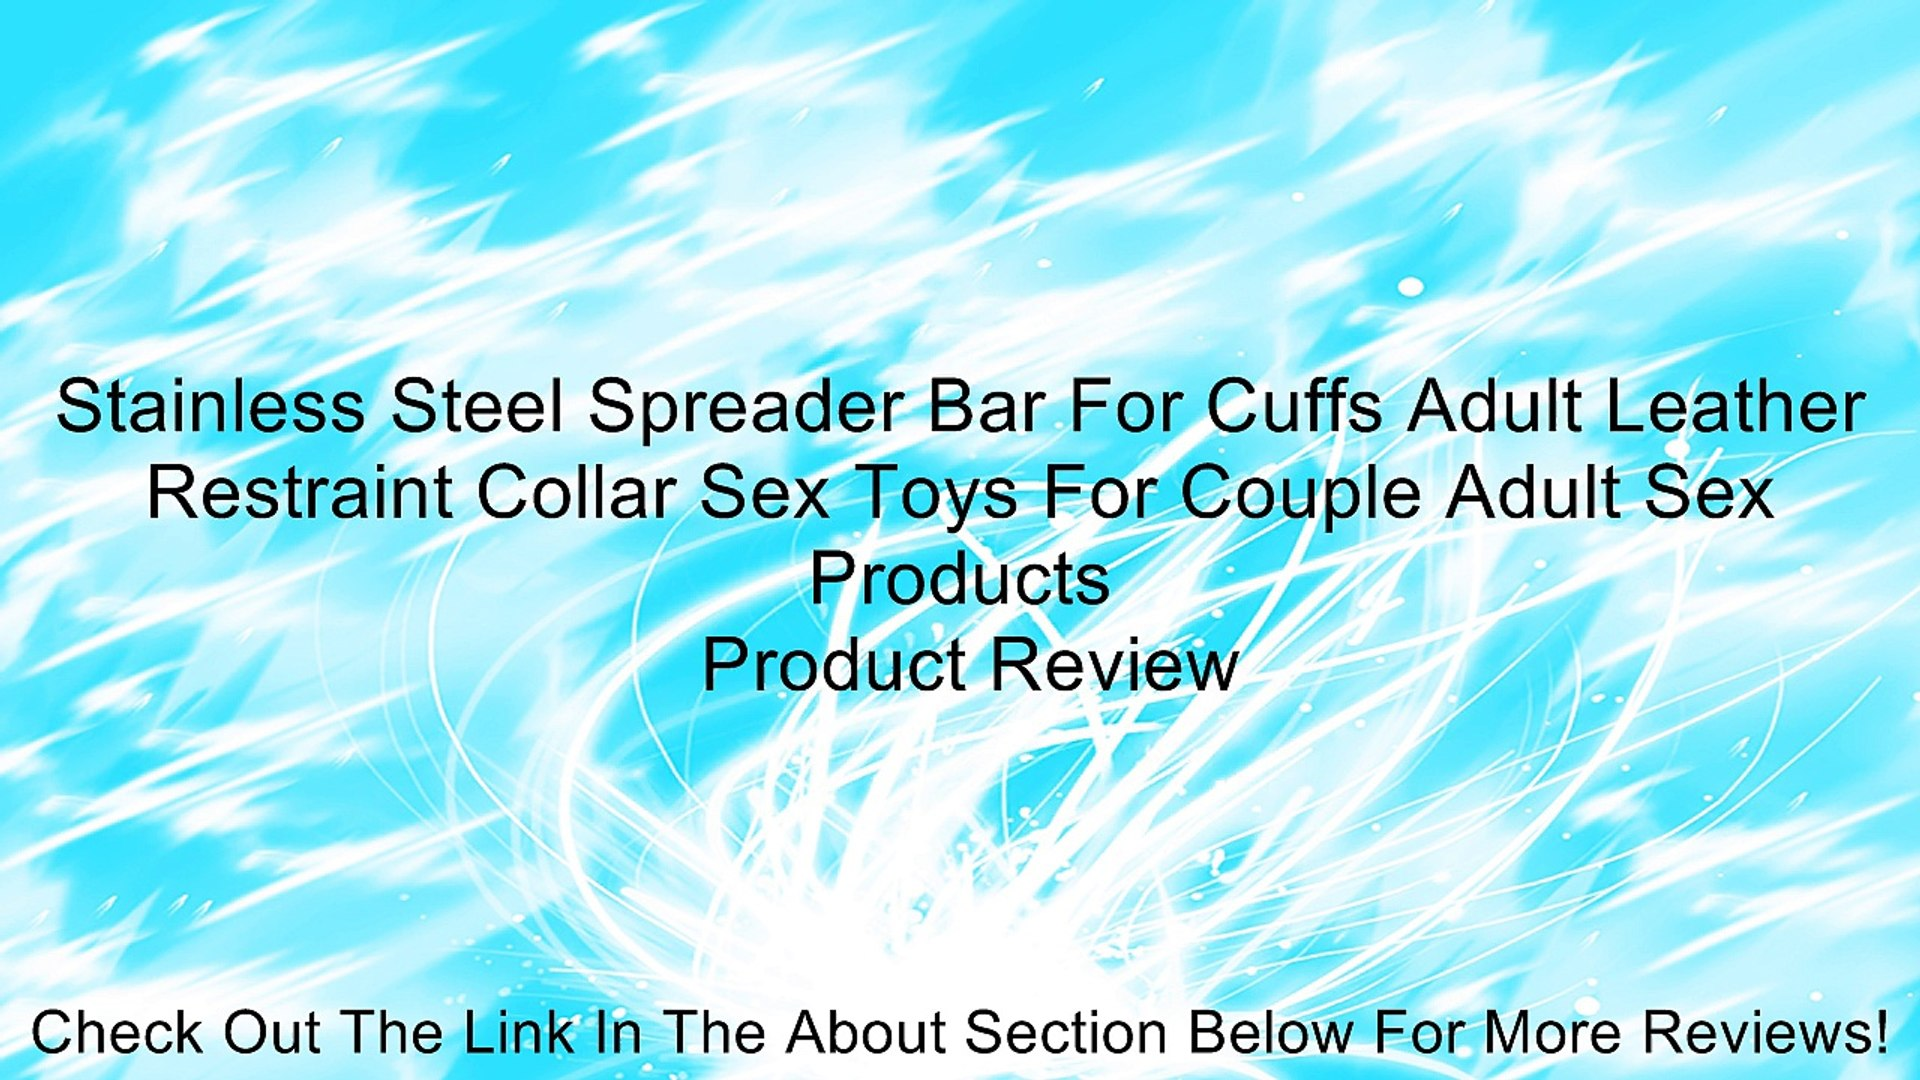 Stainless Steel Spreader Bar For Cuffs Adult Leather Restraint Collar Sex Toys For Couple Adult Sex